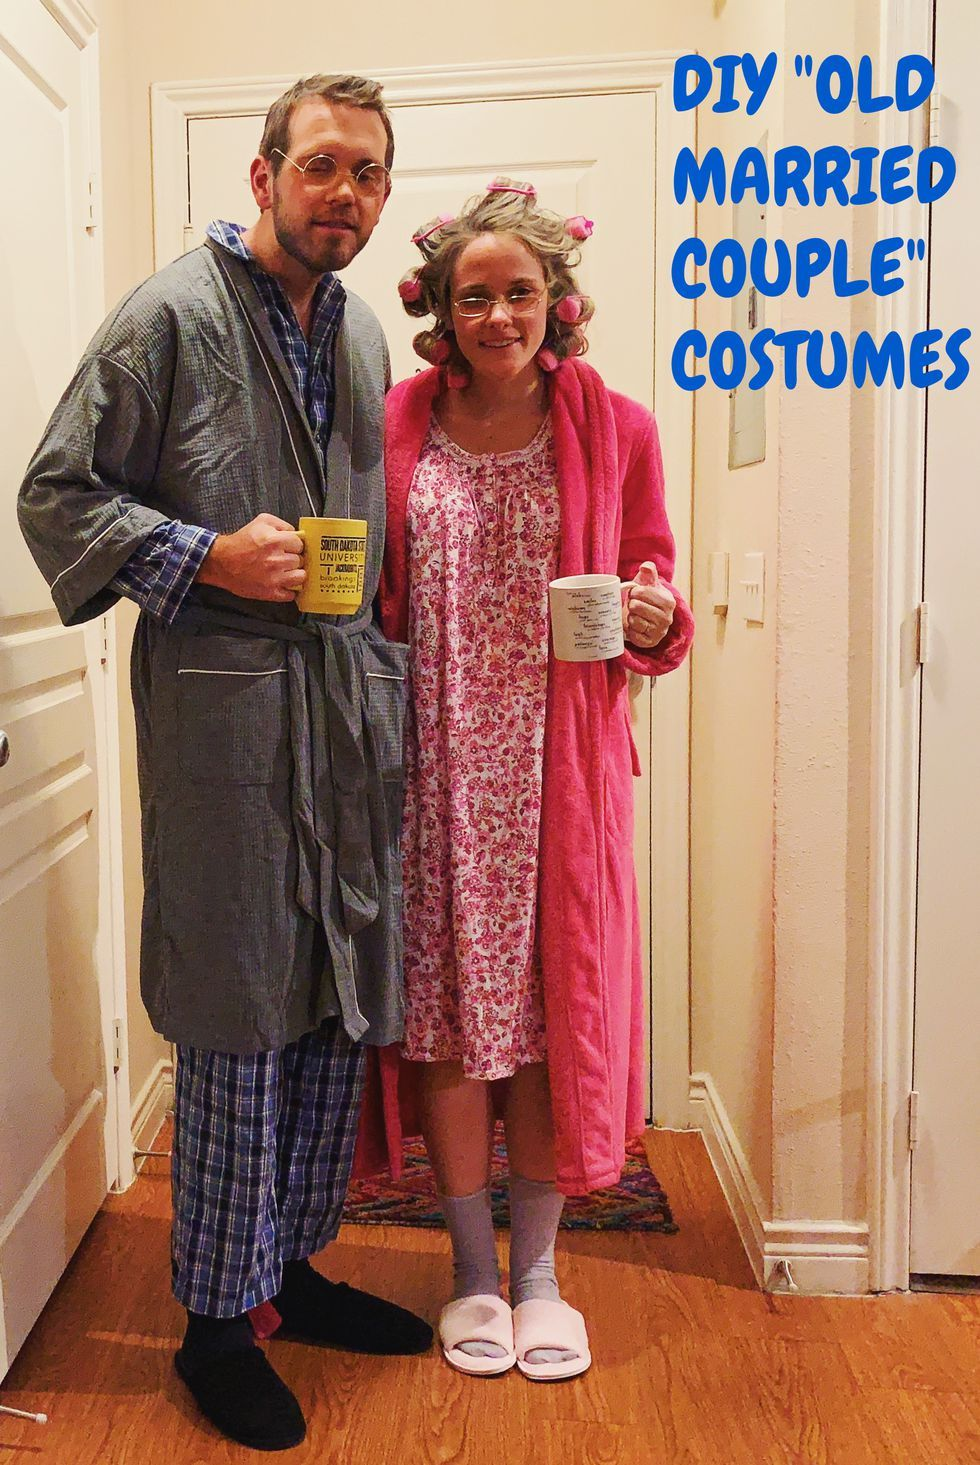 75 Best Couples Halloween Costumes 2020 Cute Funny Couples Halloween Costume Ideas